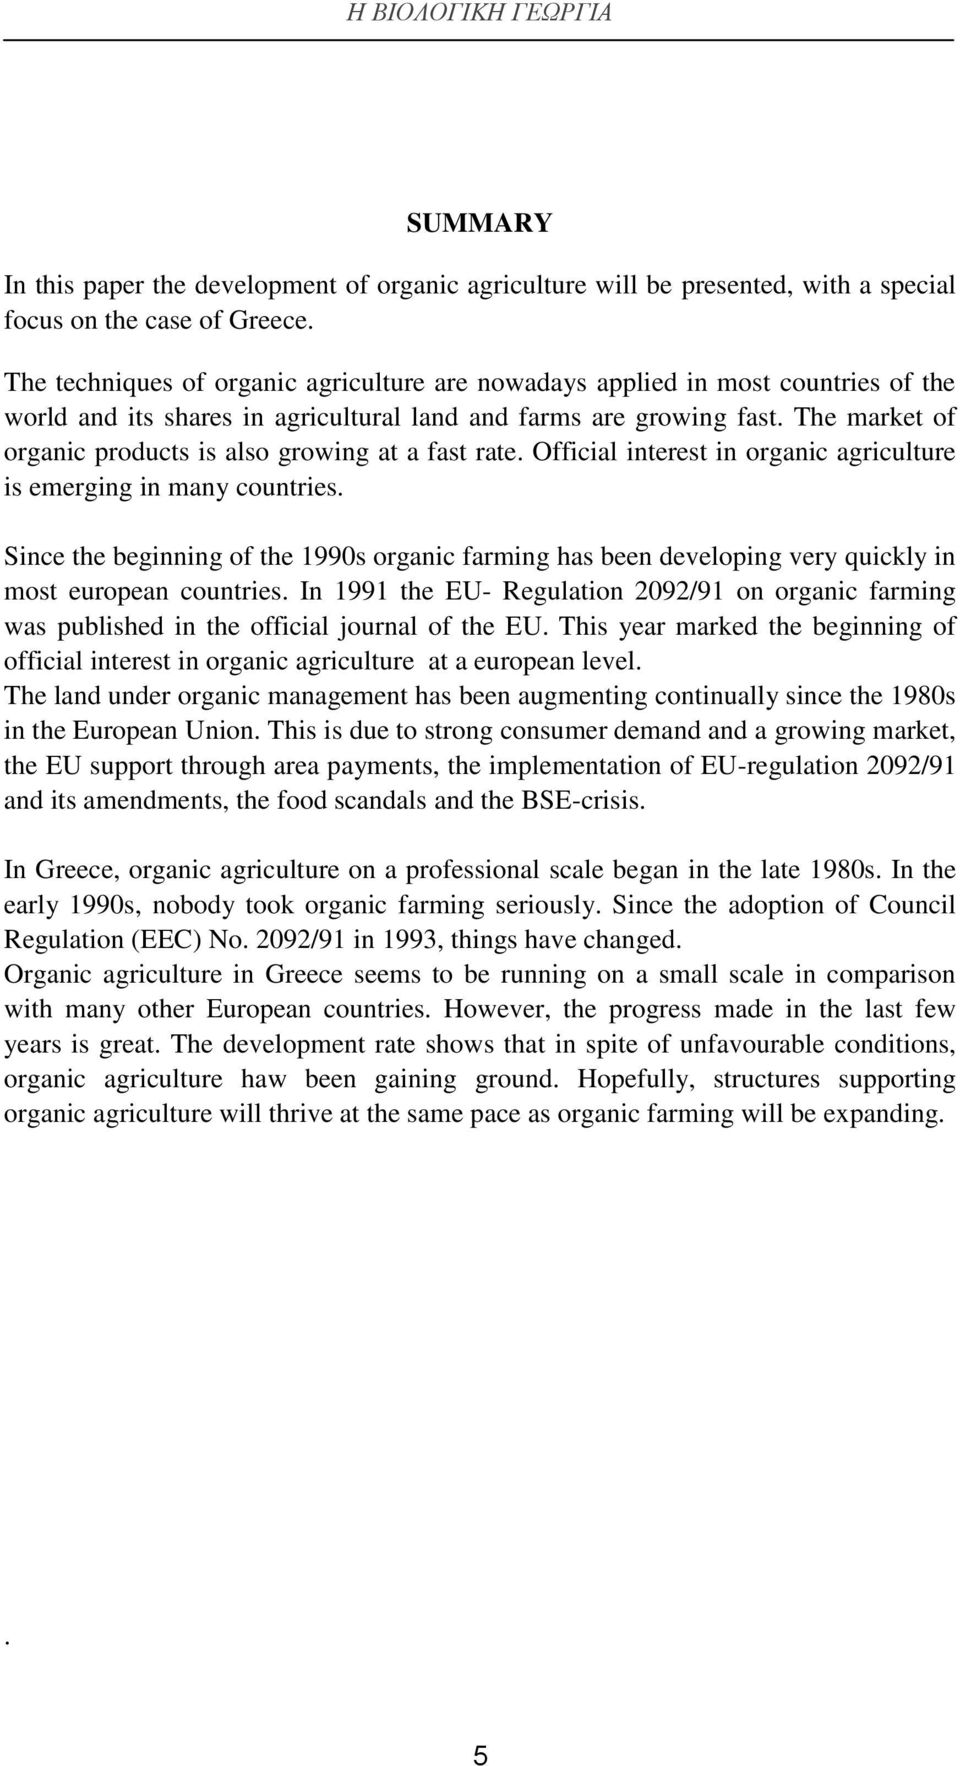 The market of organic products is also growing at a fast rate. Official interest in organic agriculture is emerging in many countries.